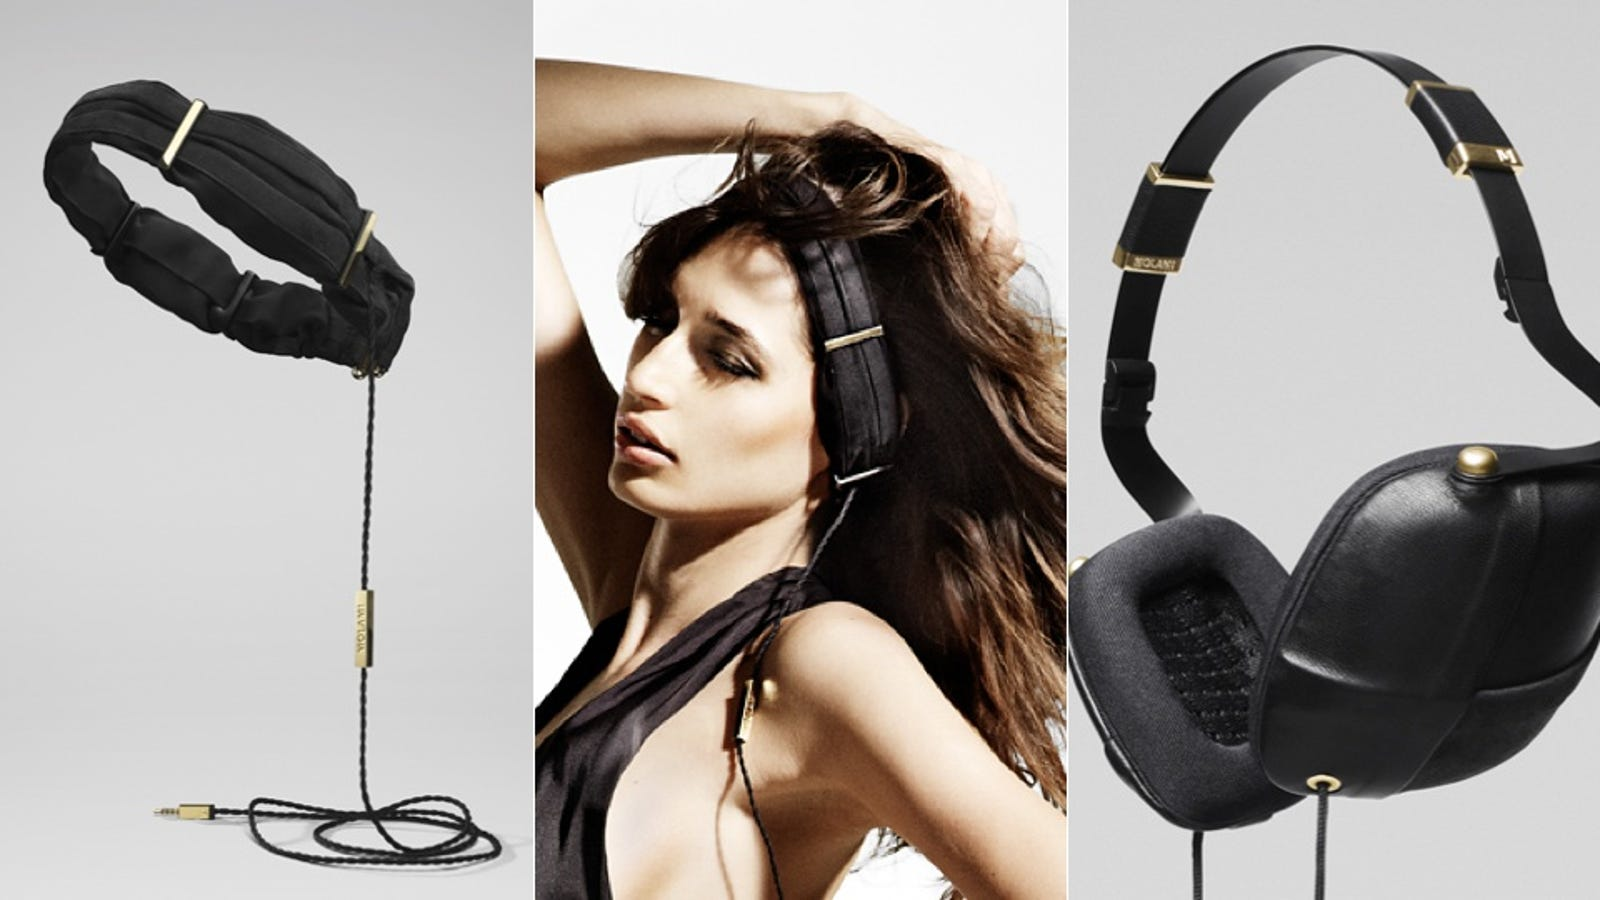 skullcandy earbuds hands free - This Is What Stylish Headphones for Ladies Look Like (Hint: They're Not Pink)